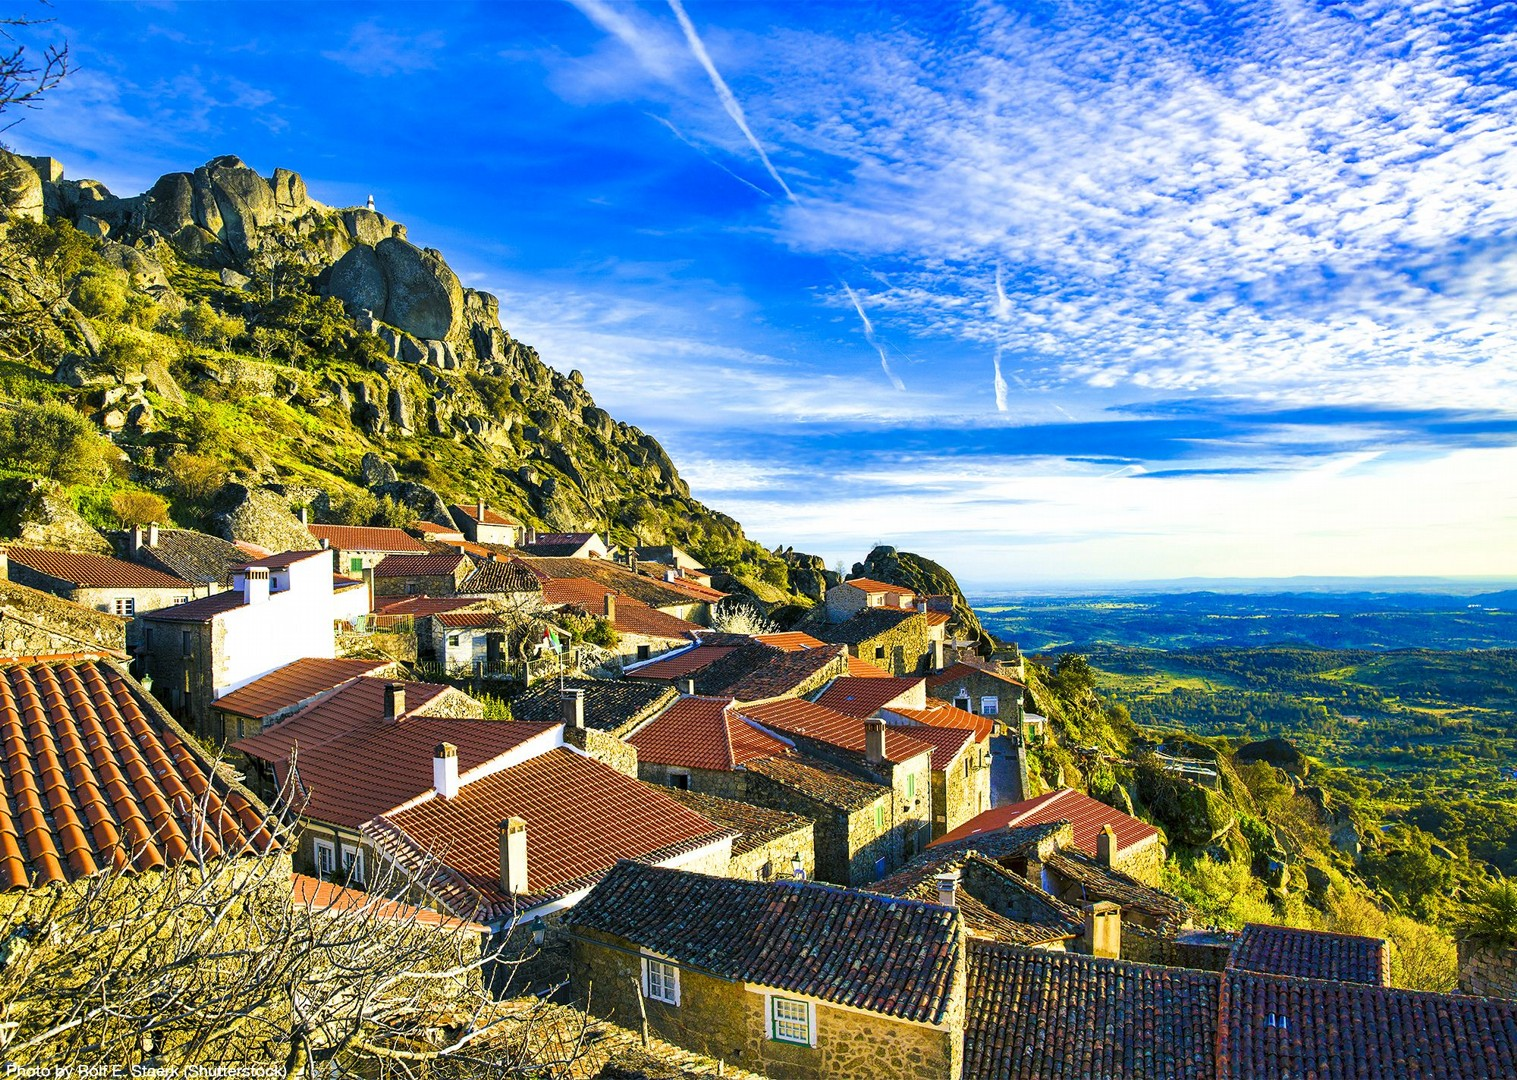 explore-portugal-incredible-views-saddle-skeaddle-self-guided-adventure.jpg - Portugal - Historic Villages - Self-Guided Leisure Cycling Holiday - Leisure Cycling